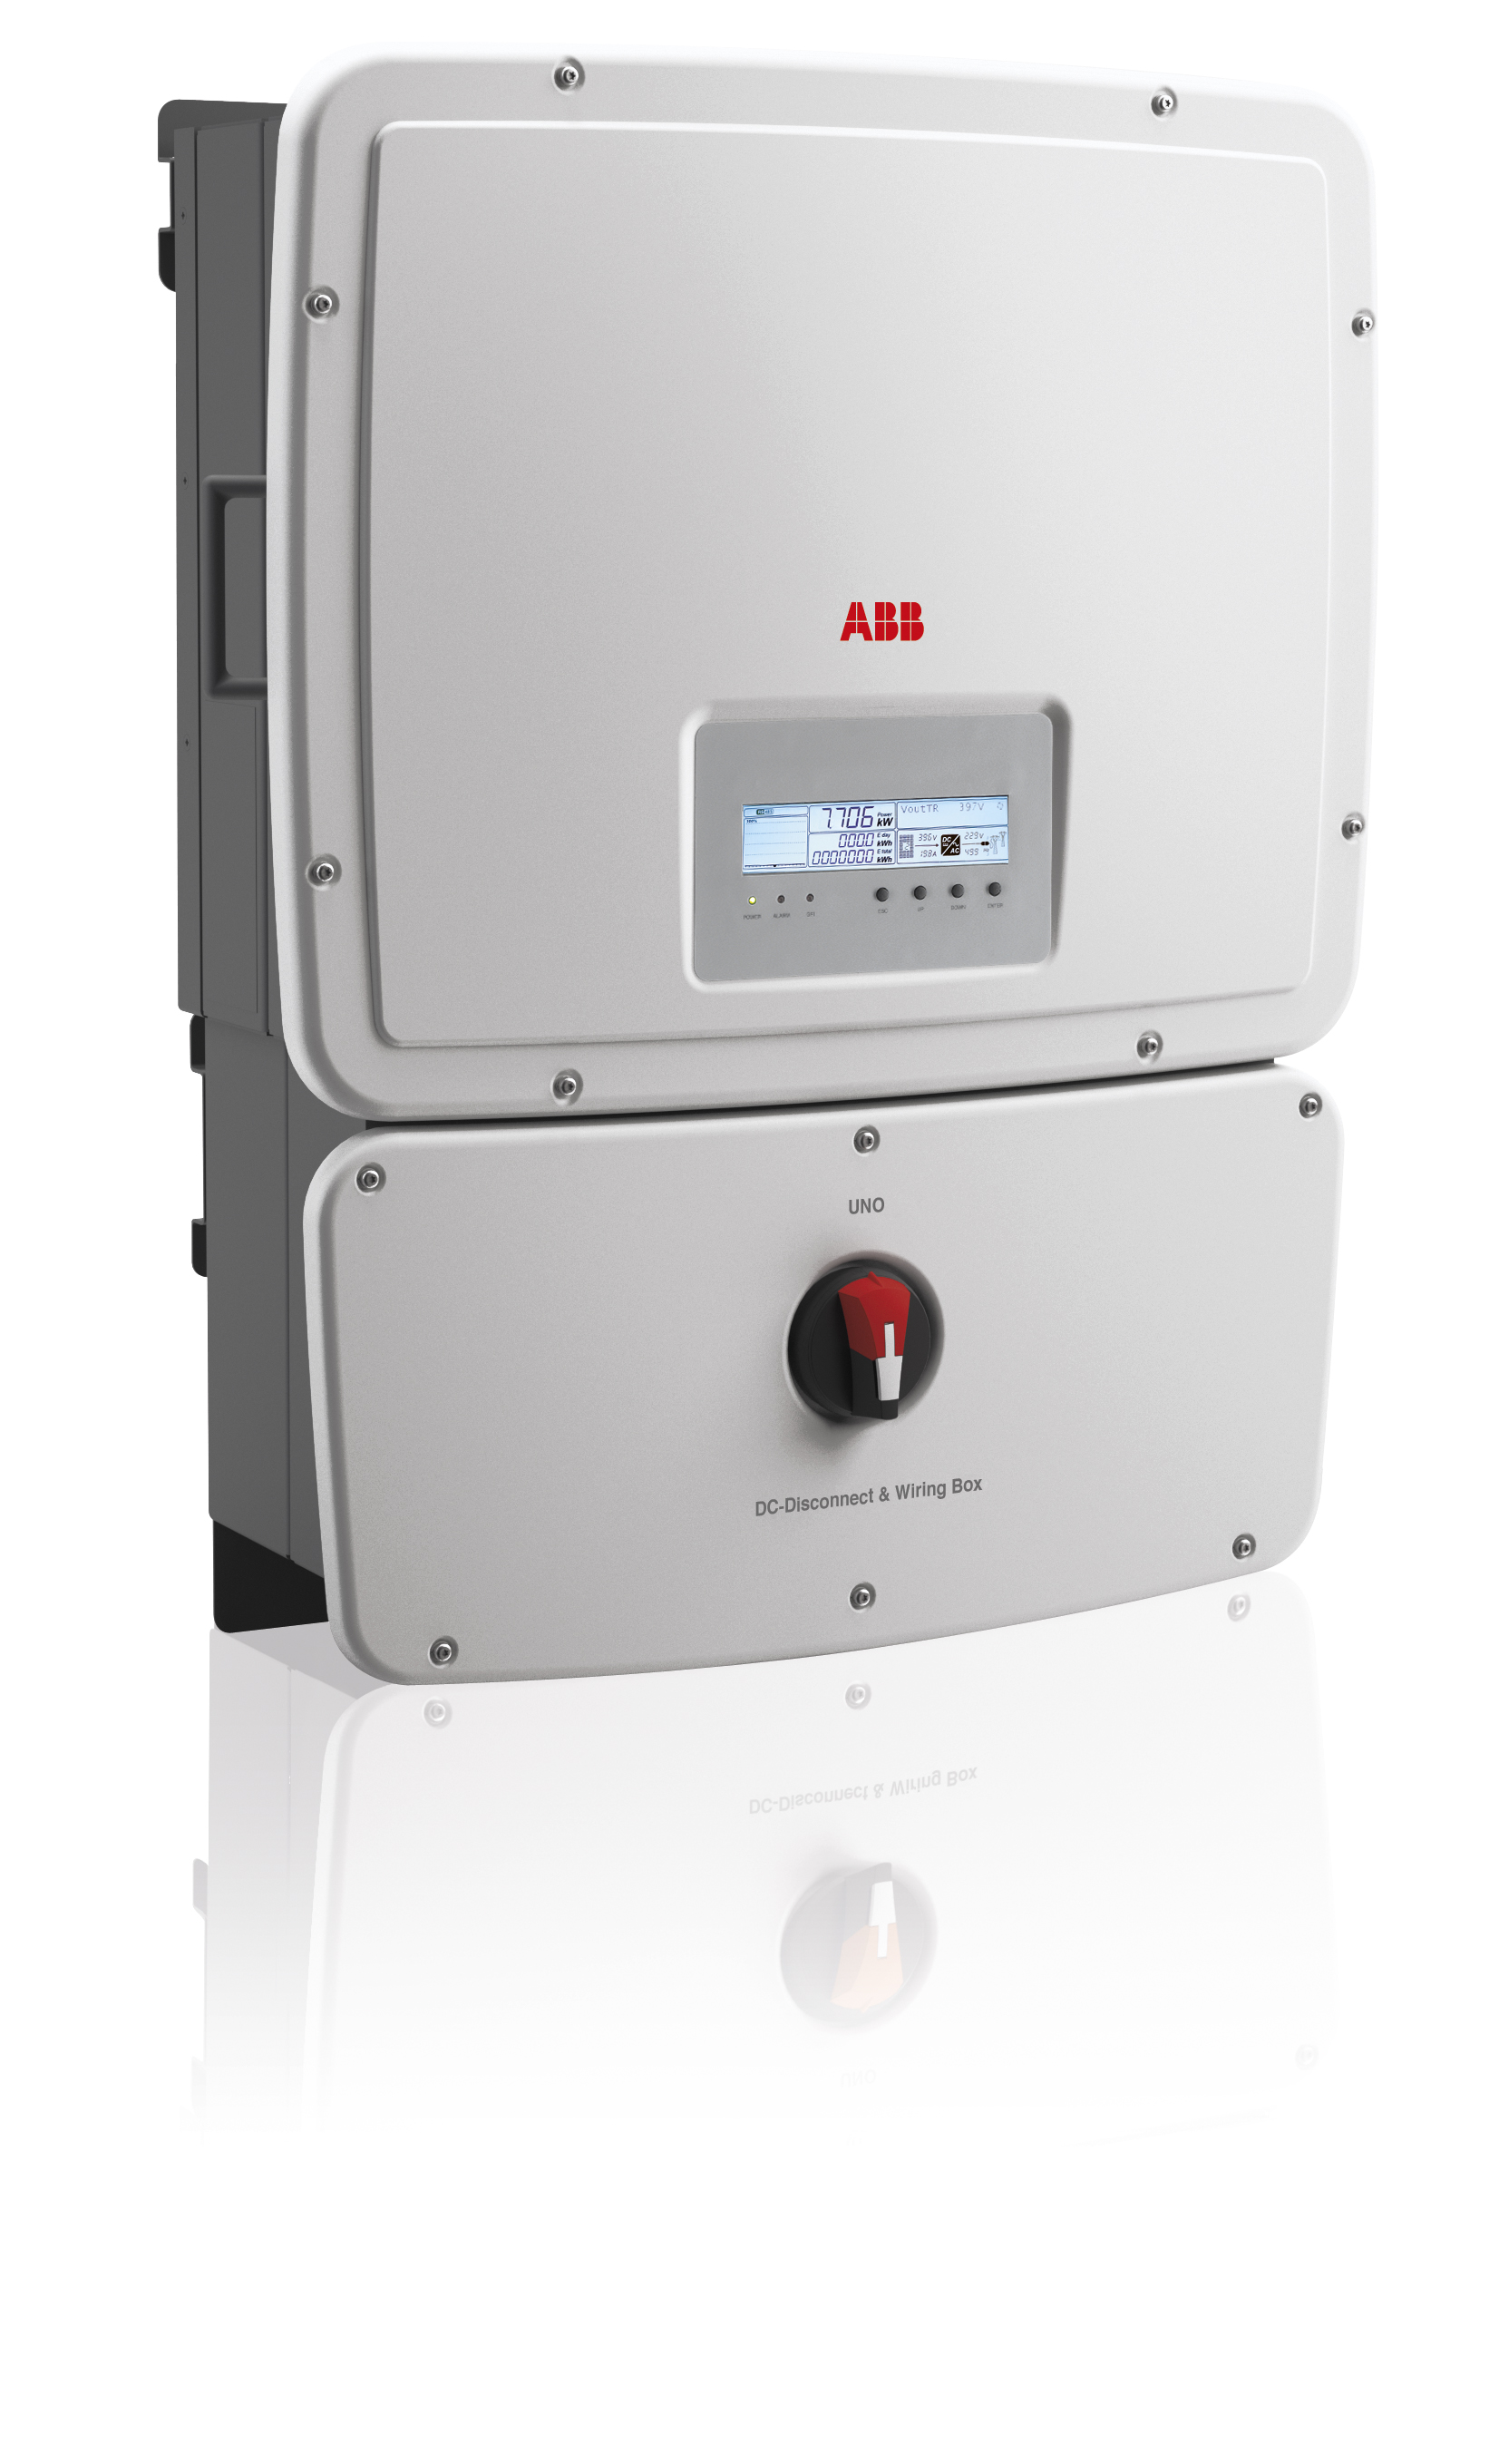 ABB, UNO-7.6-TL-OUTD-S-US-A-BWP, NON-ISOLATED STRING INVERTER, 7600W, 208/240/277VAC, DUAL MPPT WITH AFCI, 5 YR WARRANTY